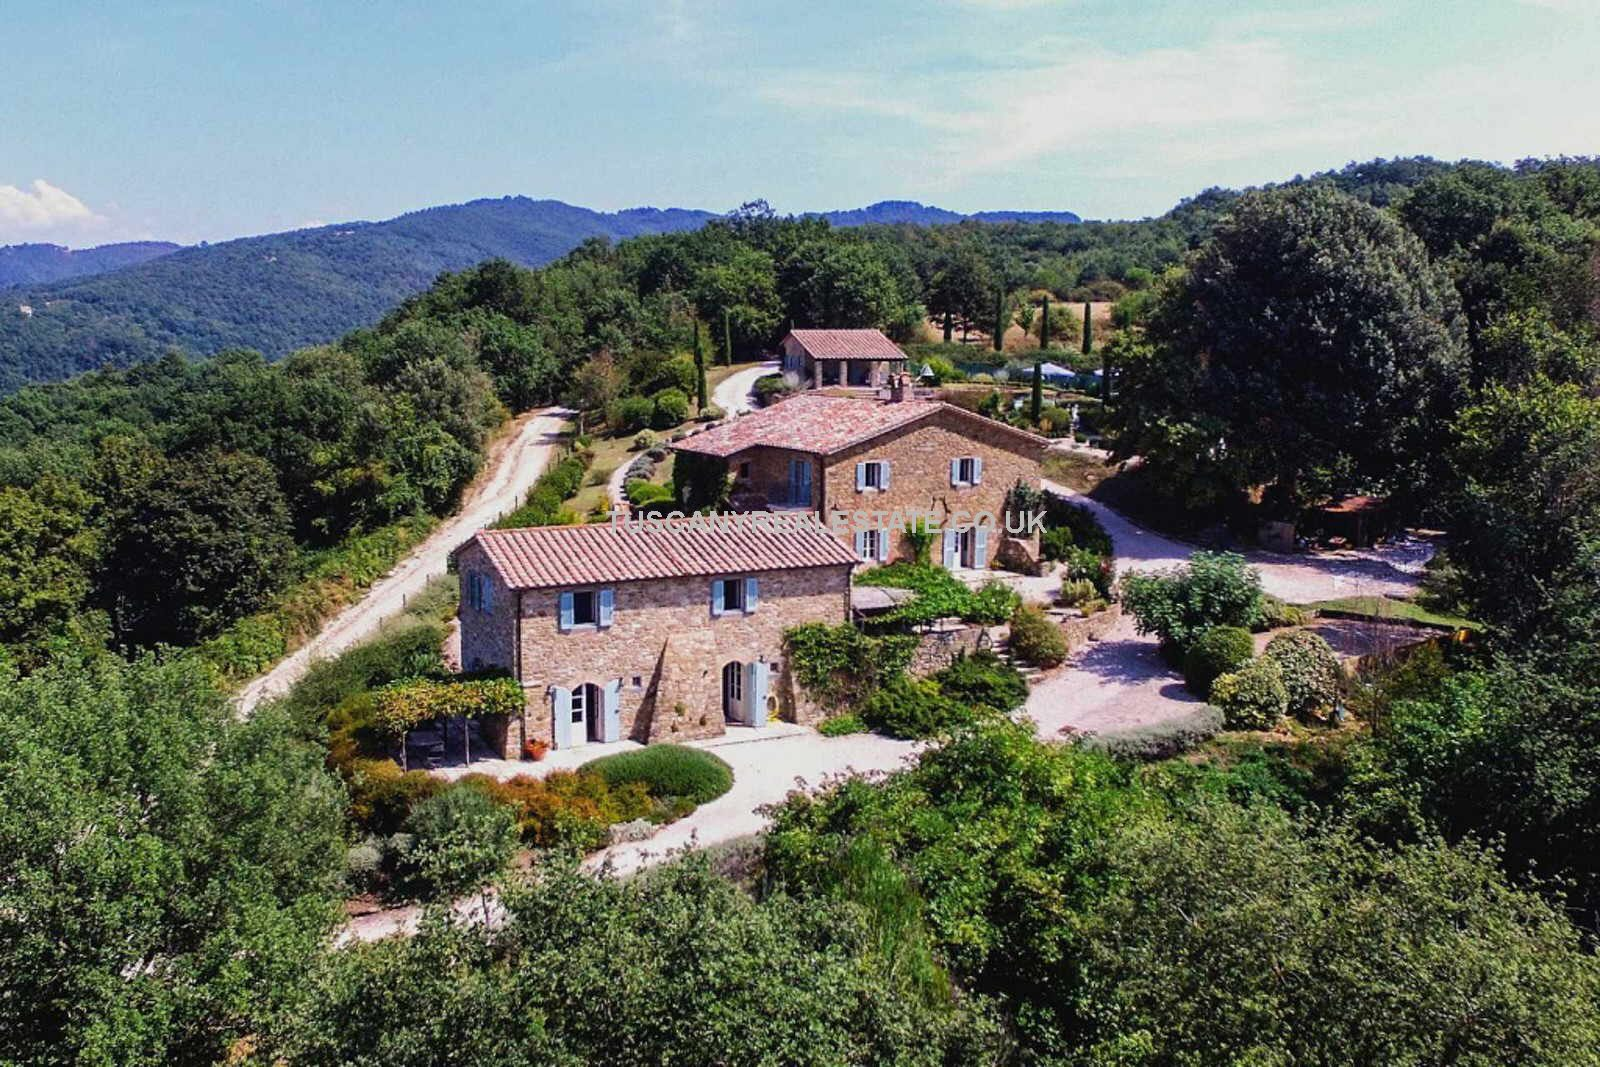 Umbria Farmhouse with guesthouse, studio, swimming pool, gardens and 16 hectares of land